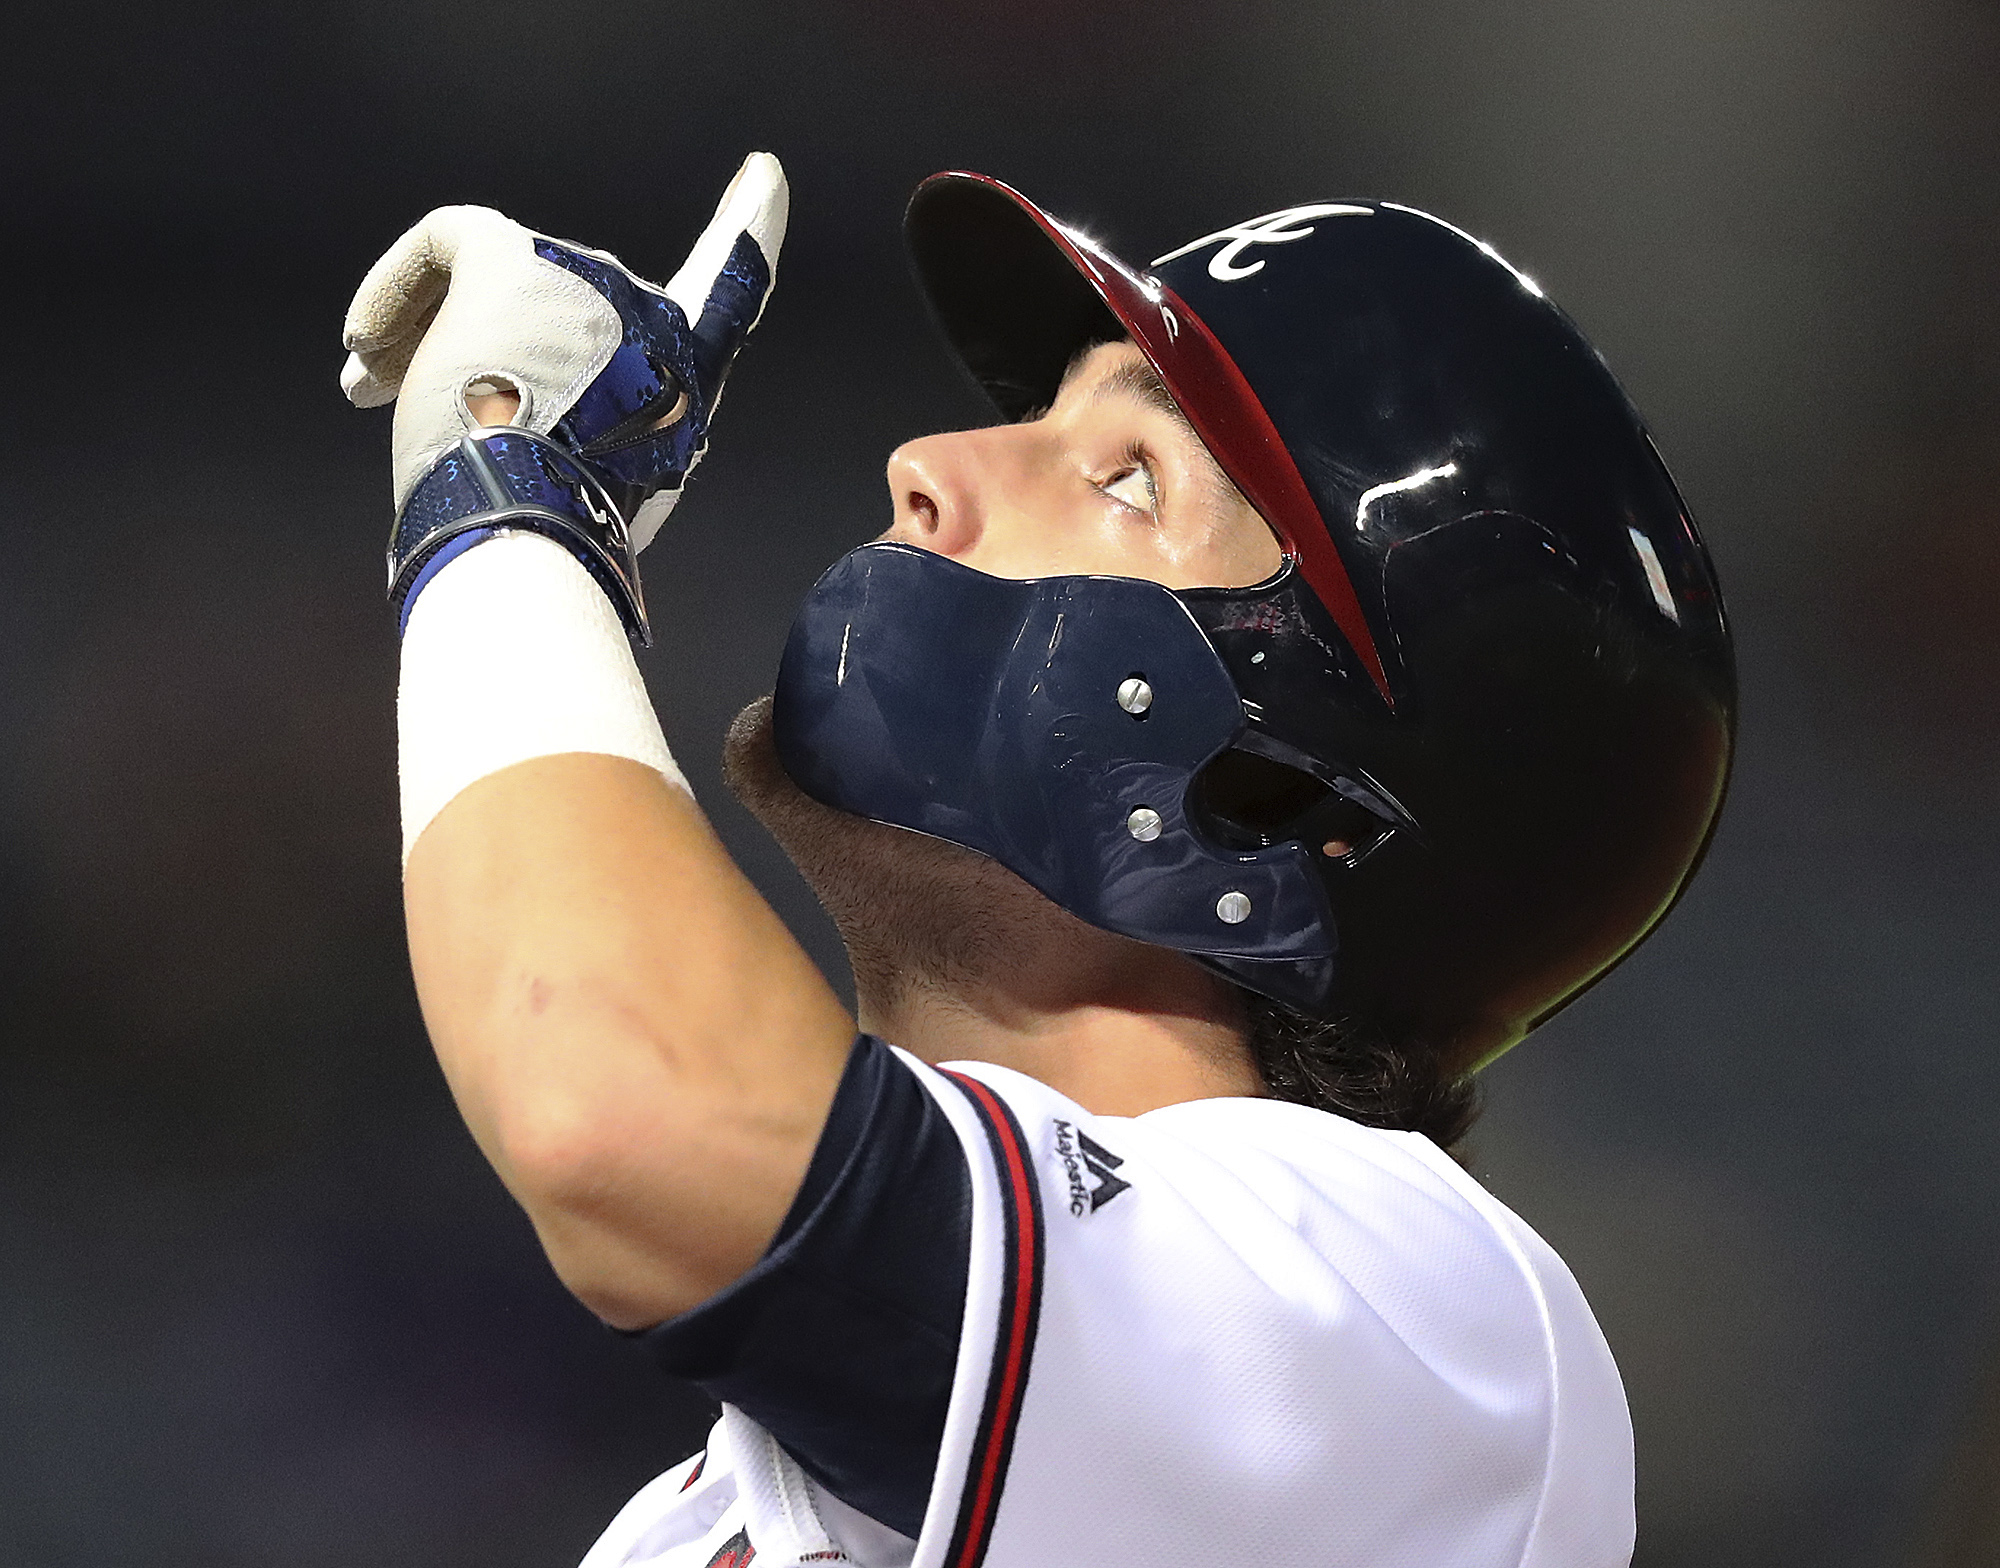 Atlanta Braves' Dansby Swanson reacts to getting his first hit in the majors, a single against the Minnesota Twins during the fourth inning of a baseball game Wednesday, Aug. 17, 2016, in Atlanta. (Curtis Compton/Atlanta Journal Constitution via AP)